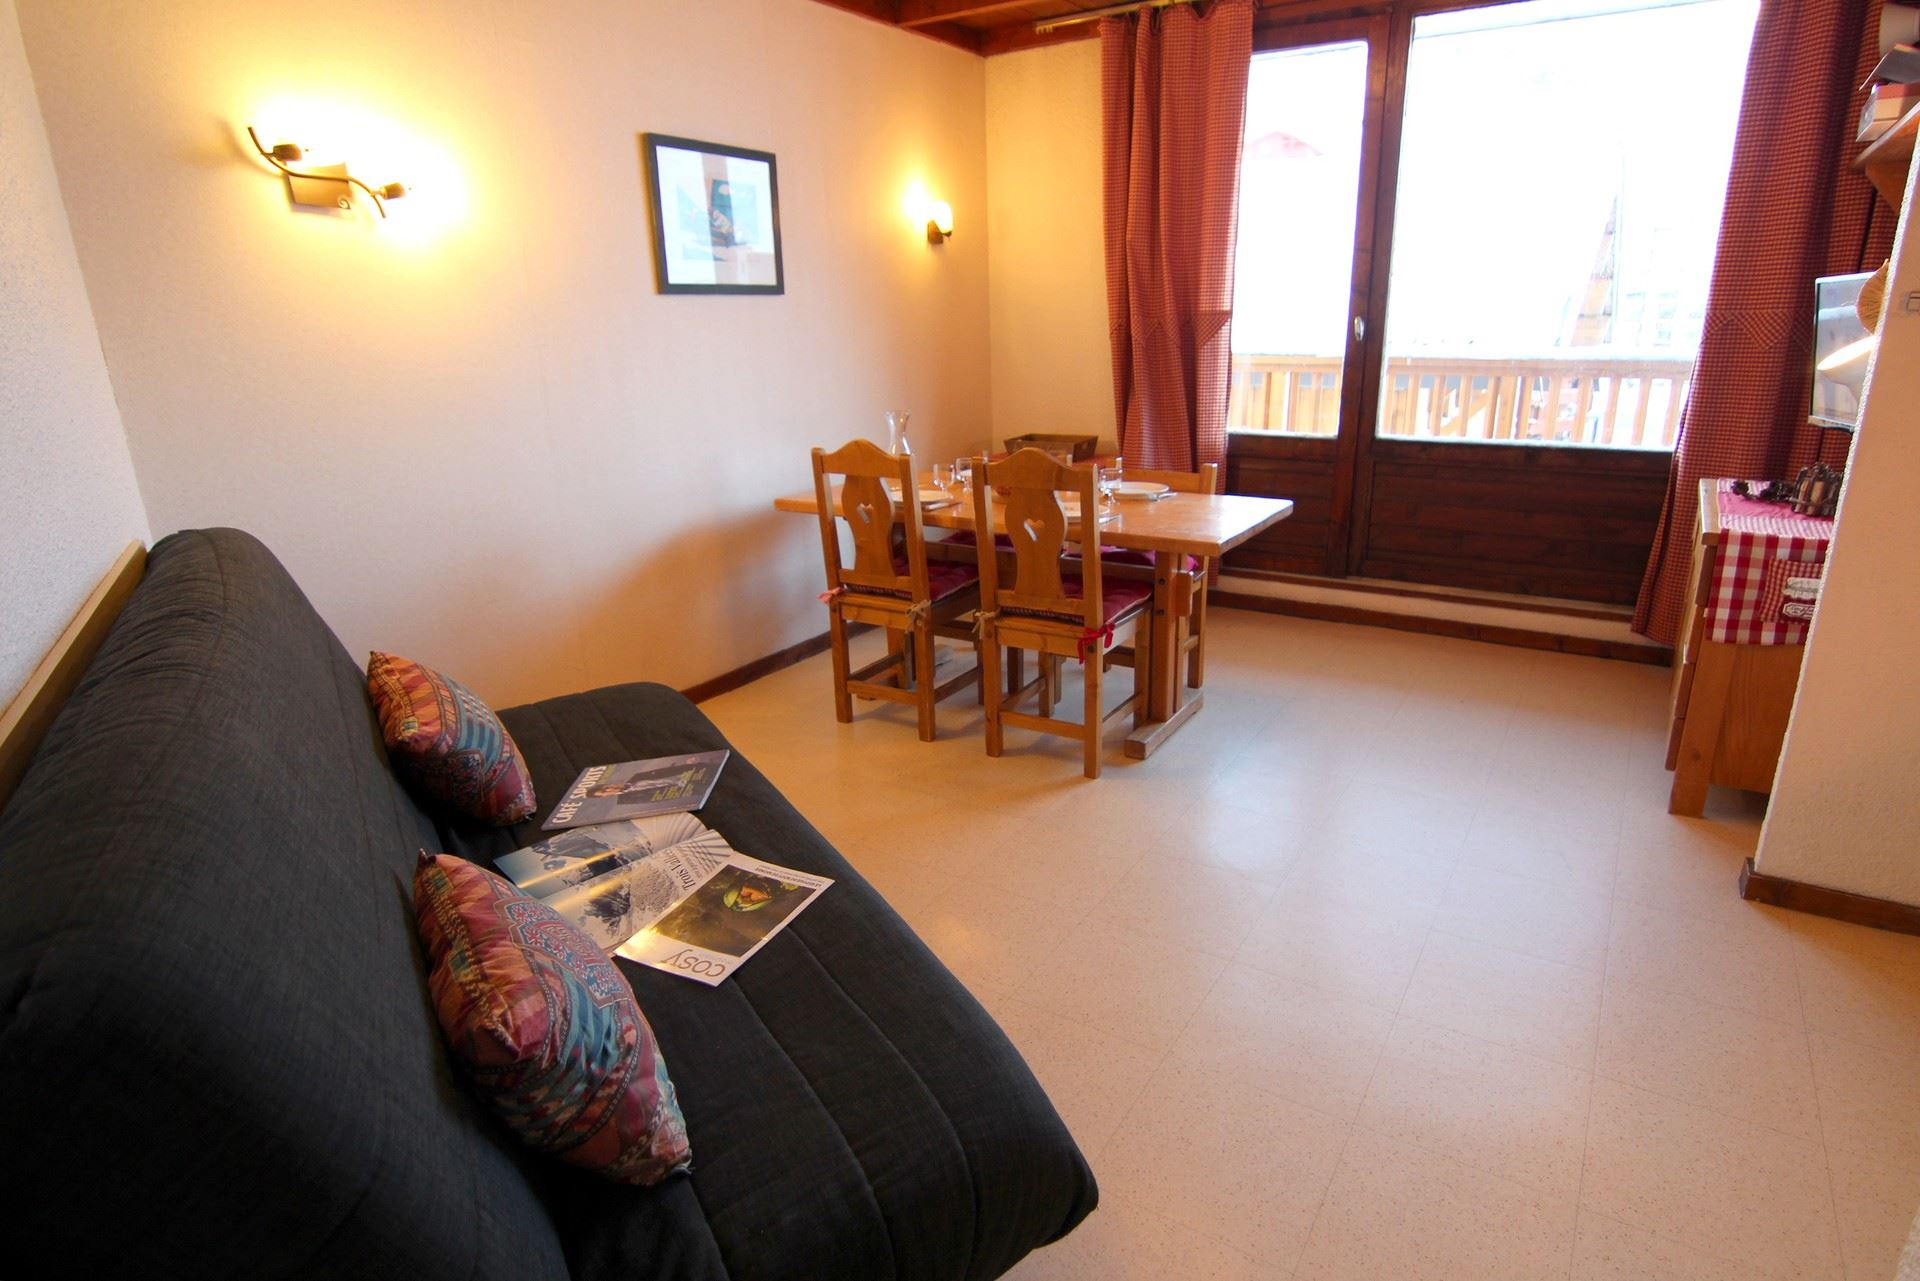 LAC BLANC 160710 / 2 rooms 5 people